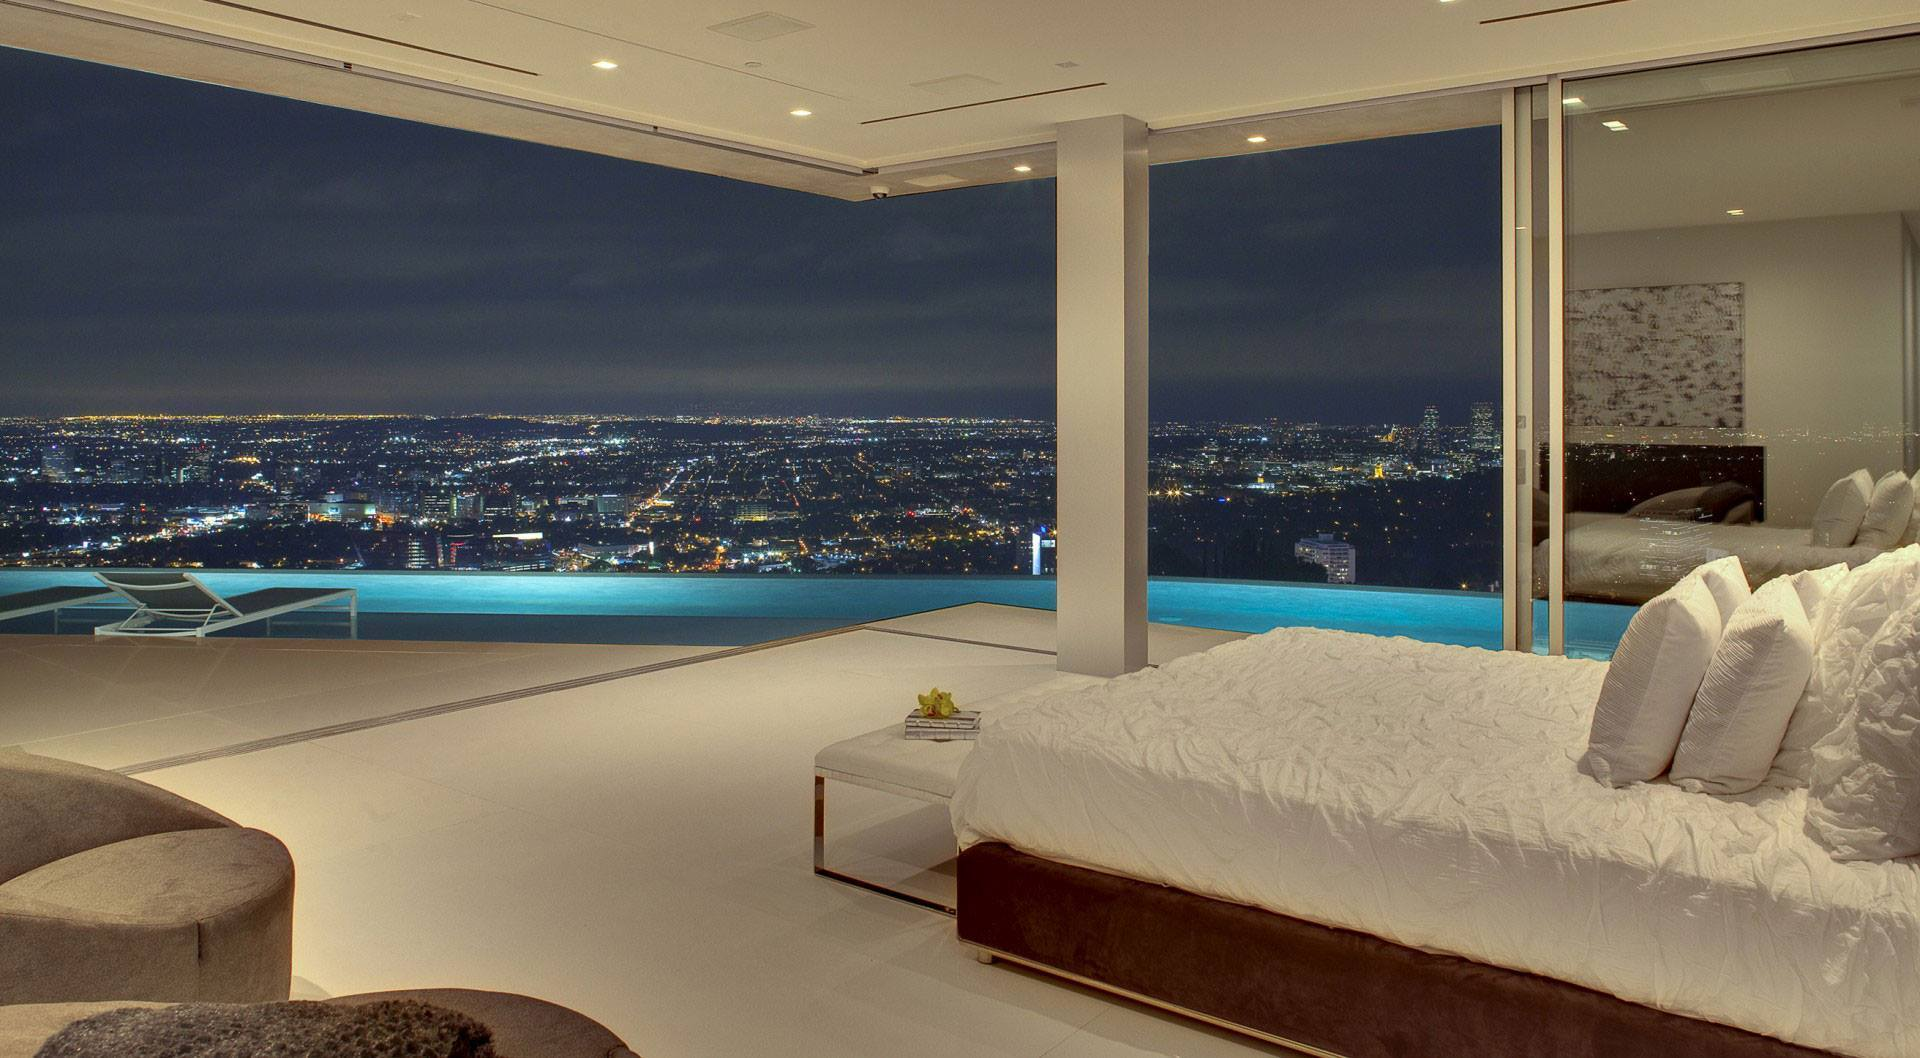 Room with a view to Los Angeles, USA